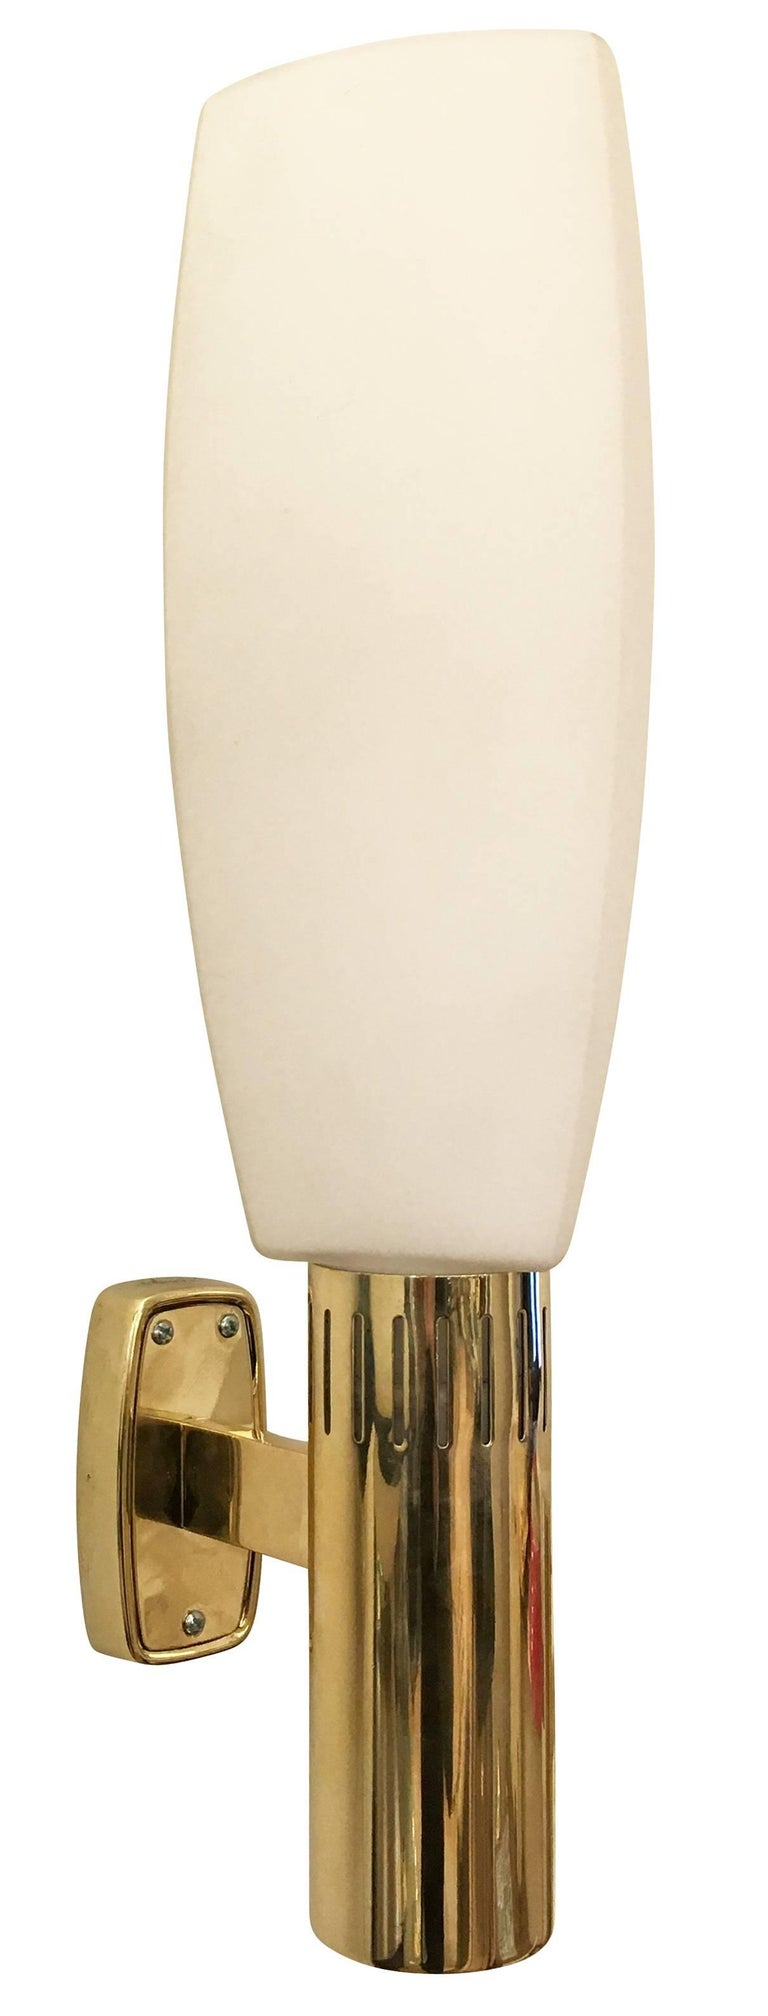 Mid-20th Century Large Brass and Glass Stilnovo Sconces, Italy, 1960s For Sale